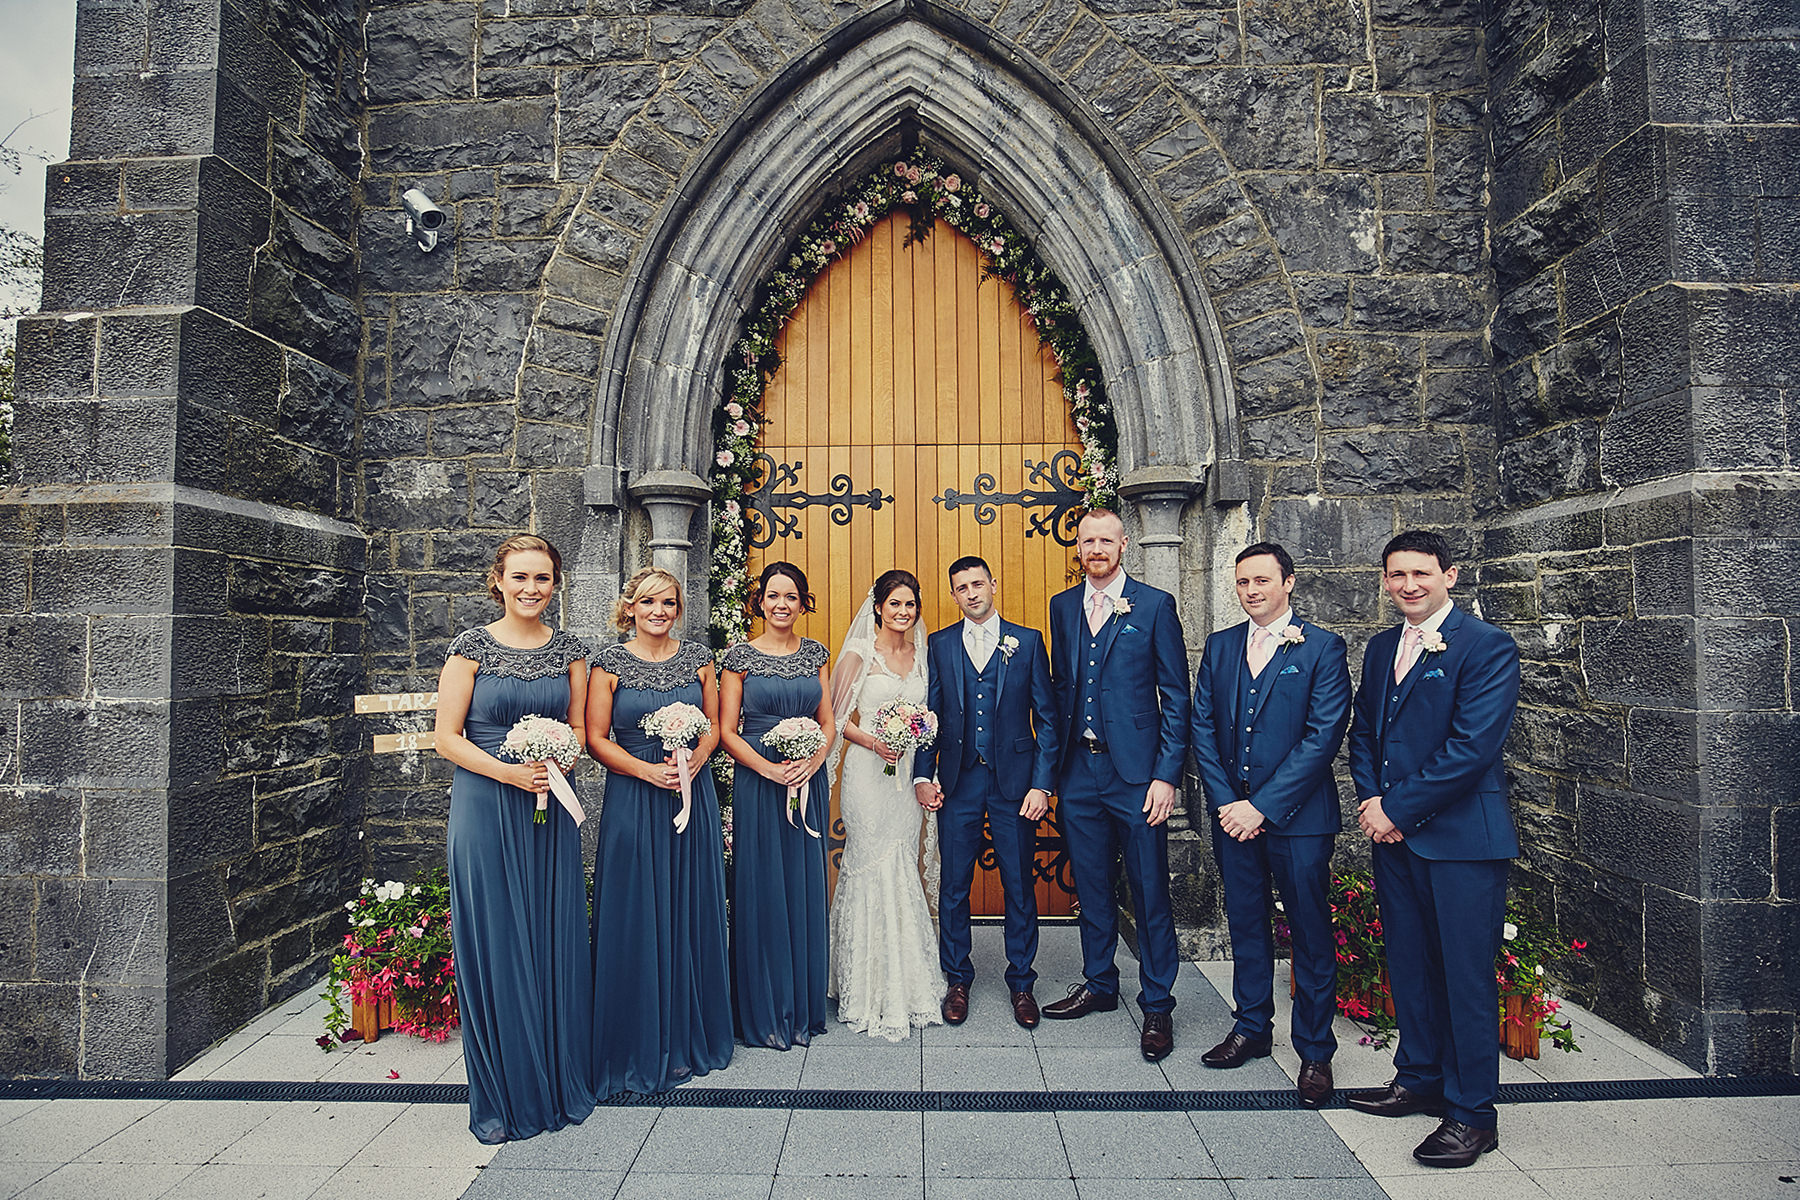 Wedding at The Keadeen Hotel Newbridge053 - Tara & Gearoid |Wedding at The Keadeen Hotel Newbridge